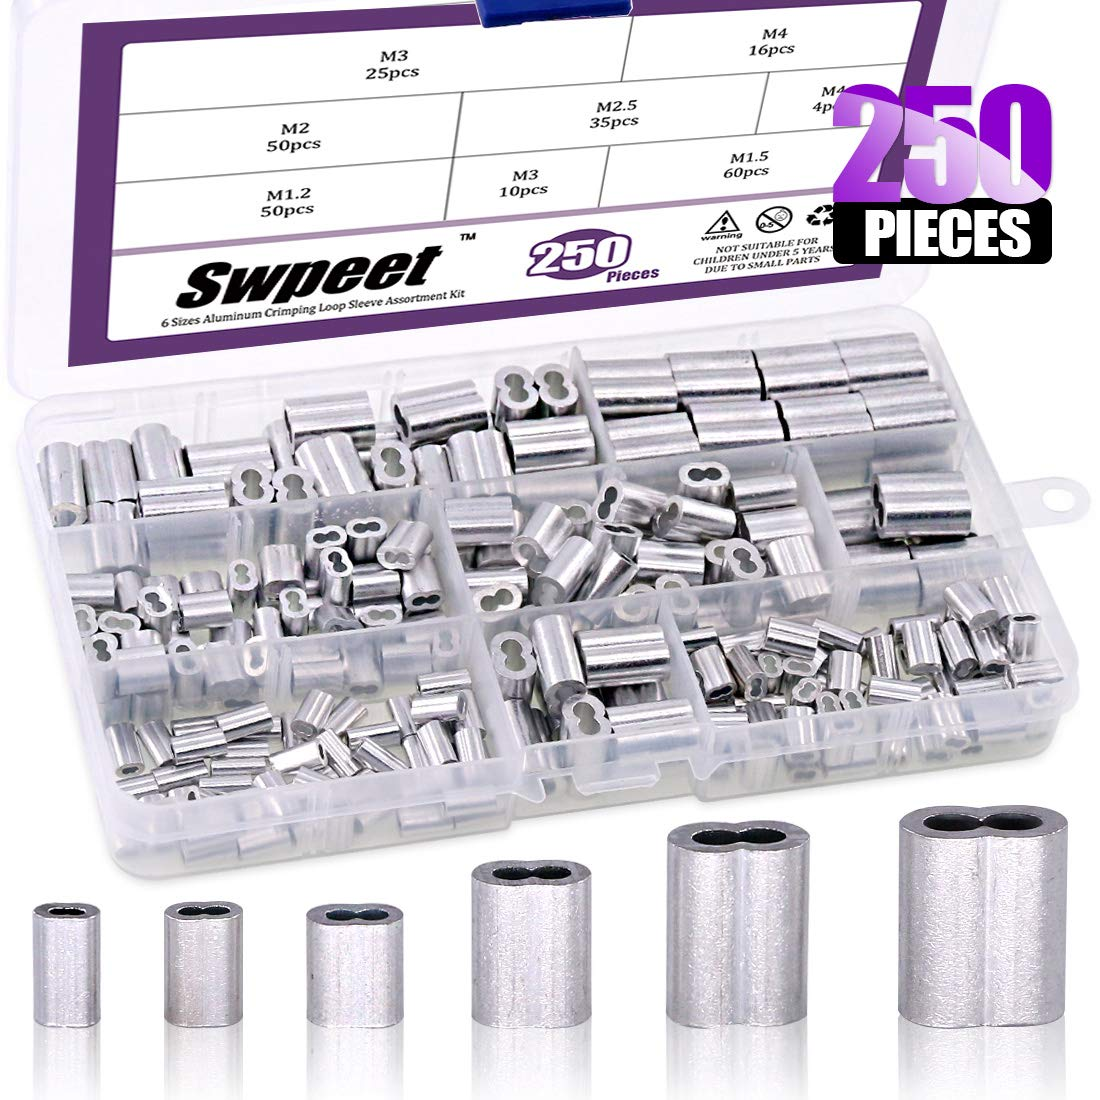 Swpeet 250Pcs 6 Sizes Aluminum Crimping Loop Sleeve Assortment Kit for Wire Rope and Cable or Anything Else Require Strong Cable